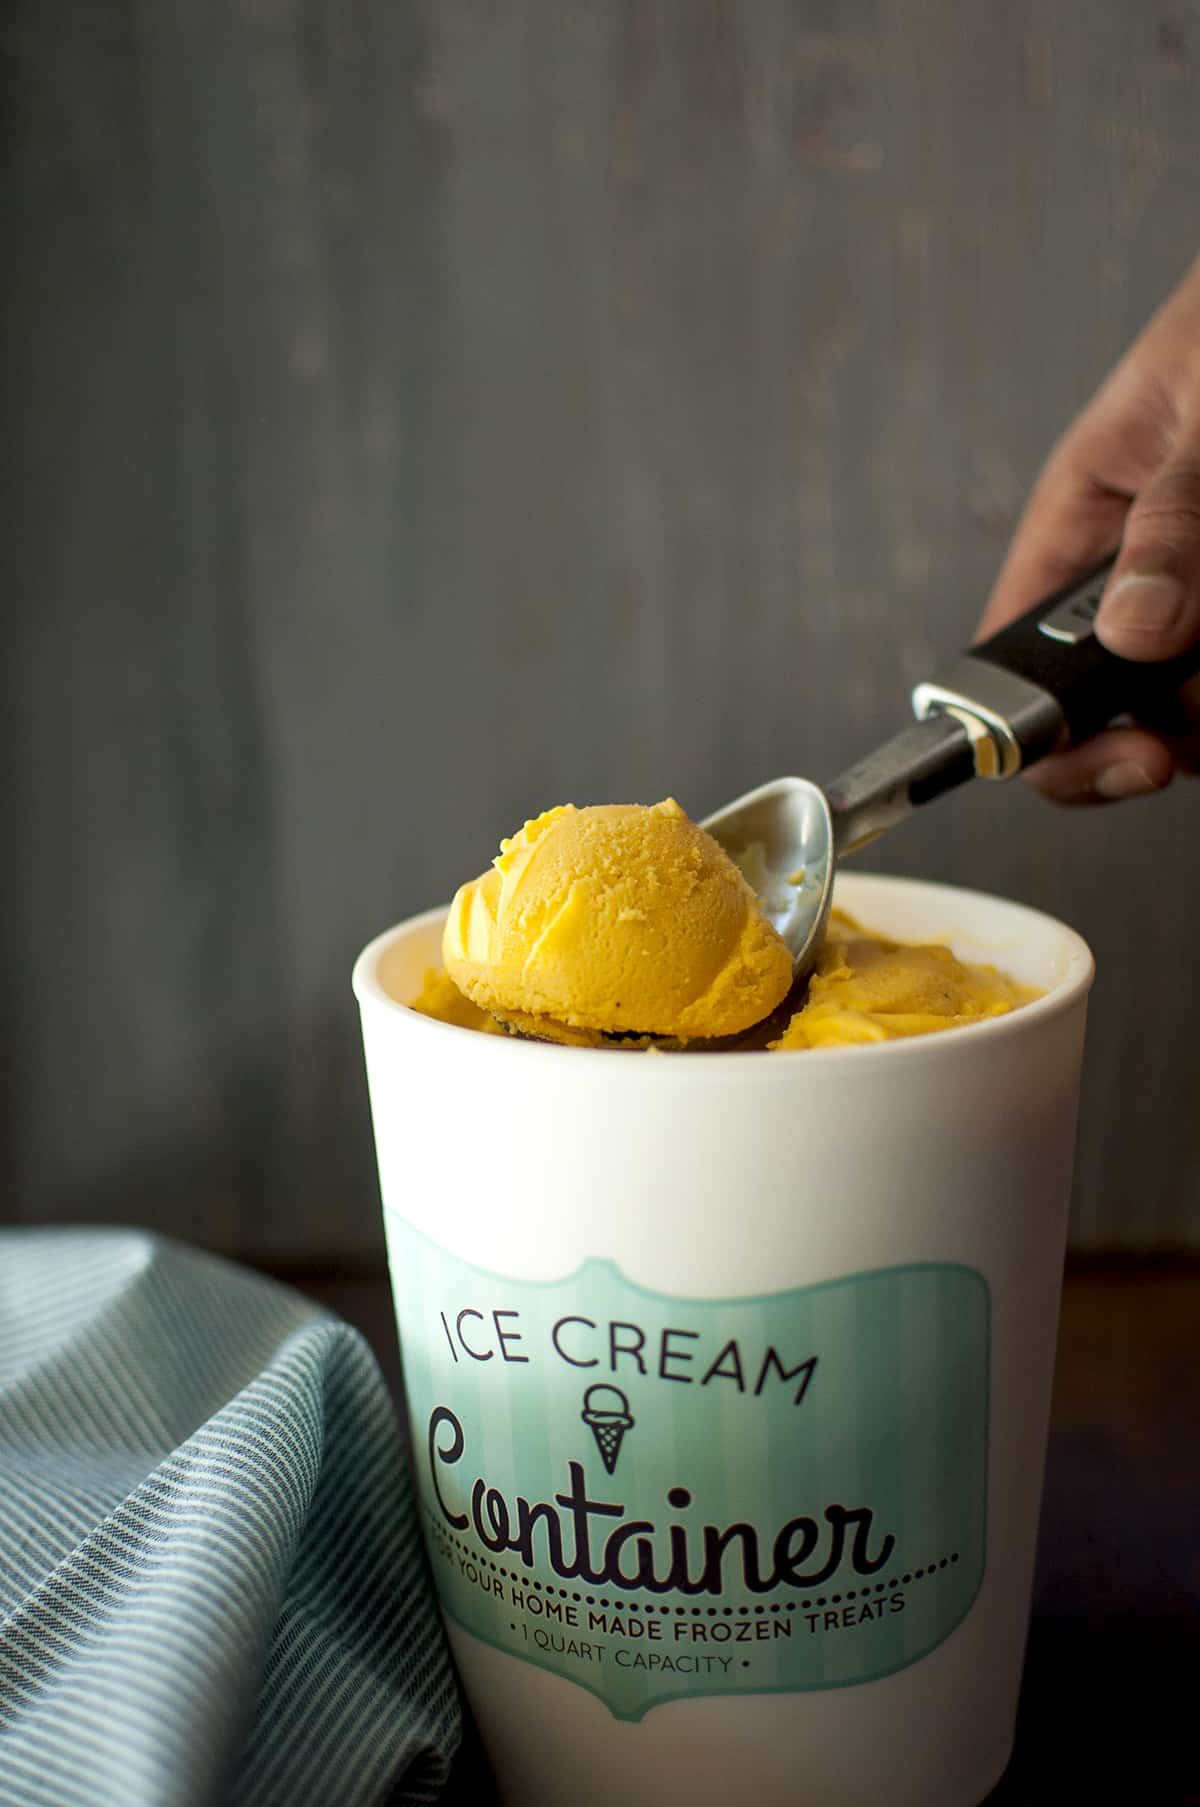 Ice cream container with mango ice cream with a scoop on top